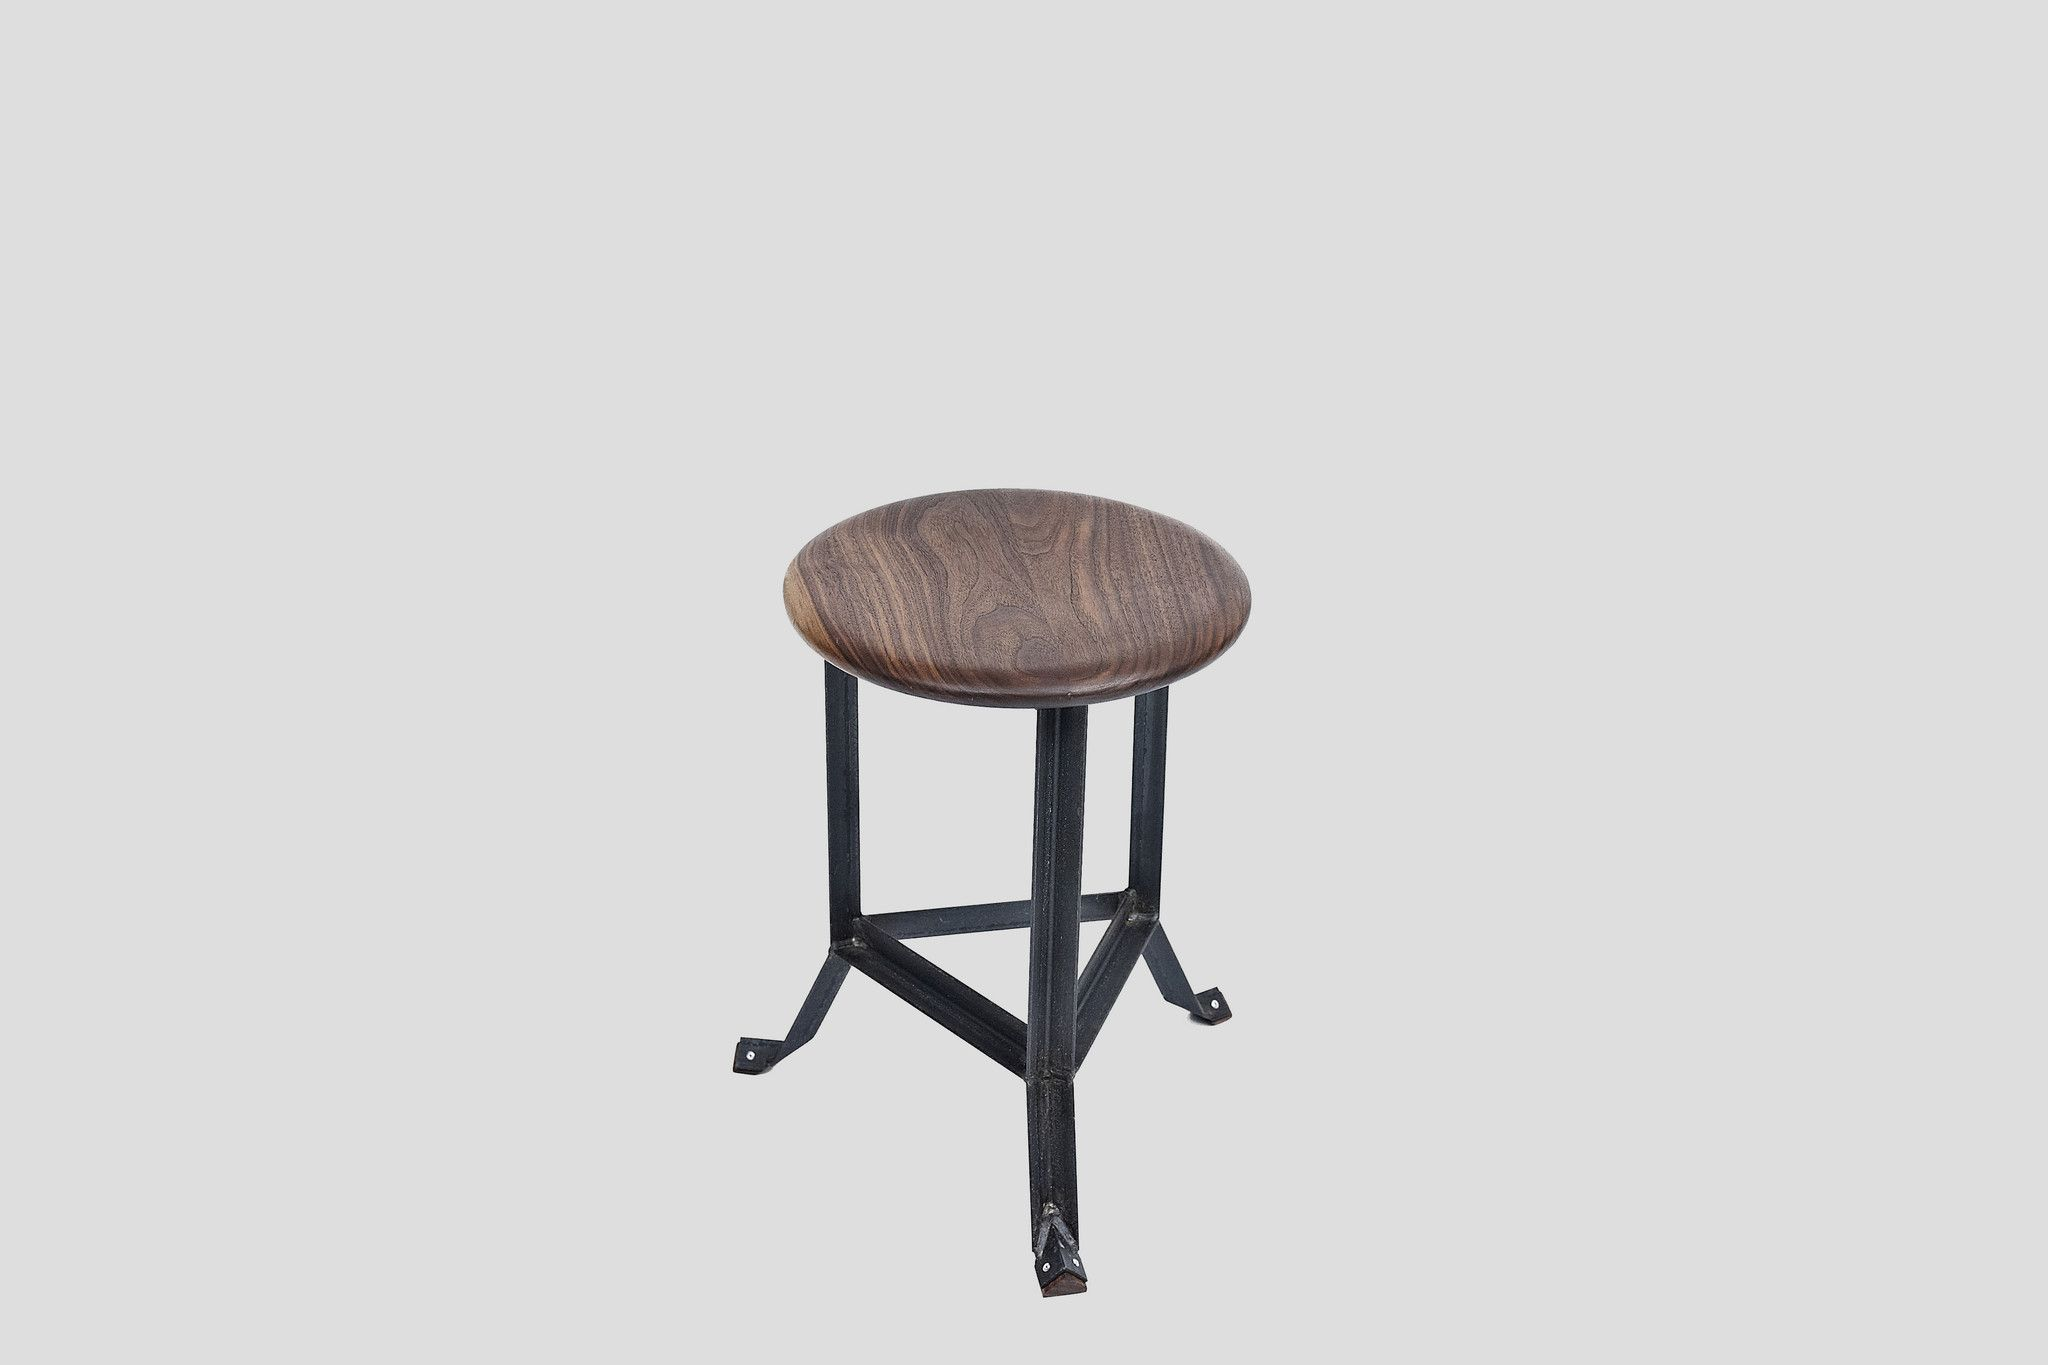 Remarkable The La Buca Stool Stands Tall As One Of The Most Comfortable Camellatalisay Diy Chair Ideas Camellatalisaycom